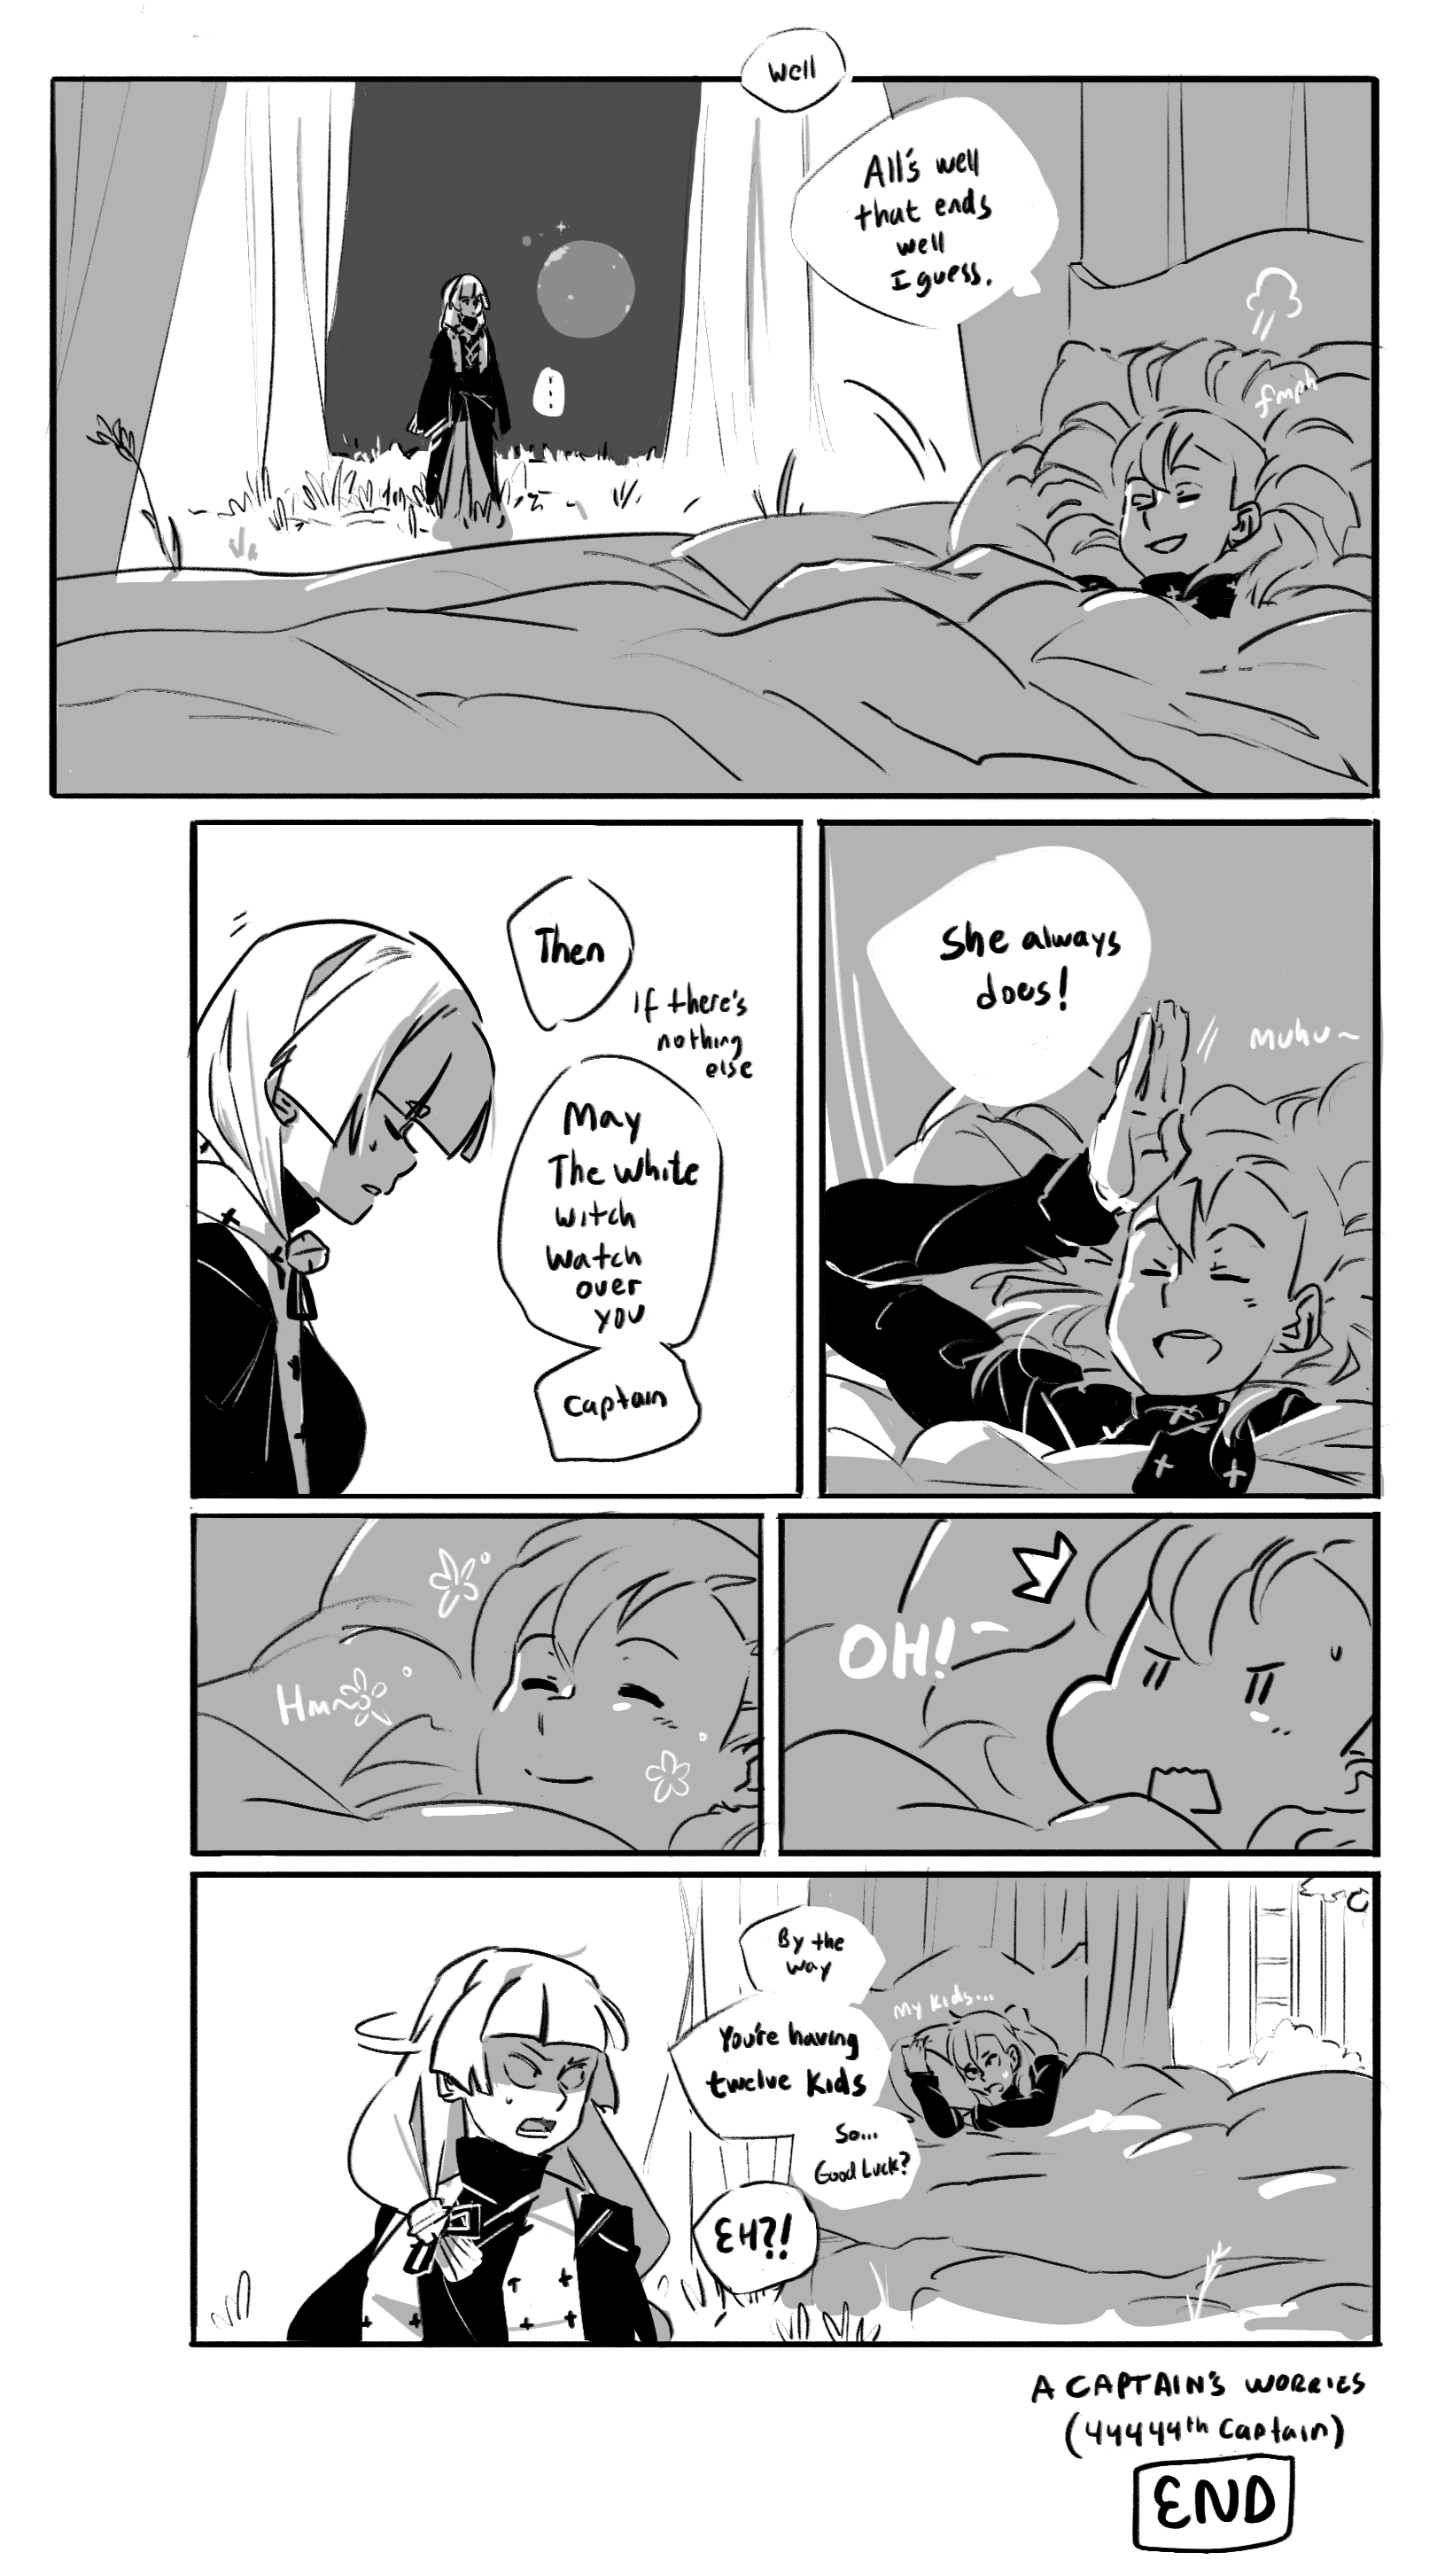 [ A Captain's Worries - 18 ]